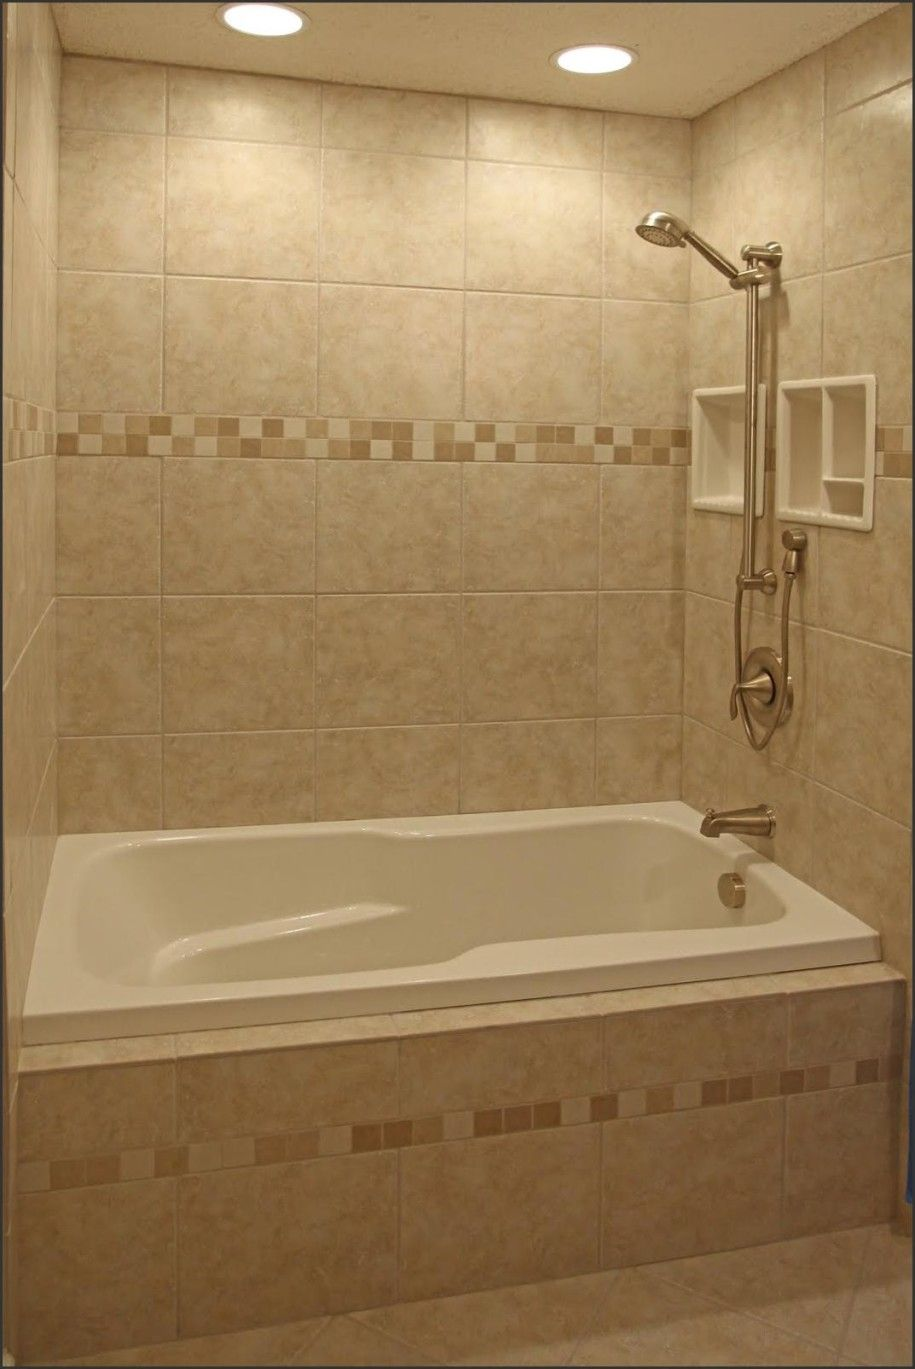 Tub Shower Ideas For Small Bathrooms Pleasing Small Bathroom With Alcove Bathtub Shower Combo And Limestone Wall Review